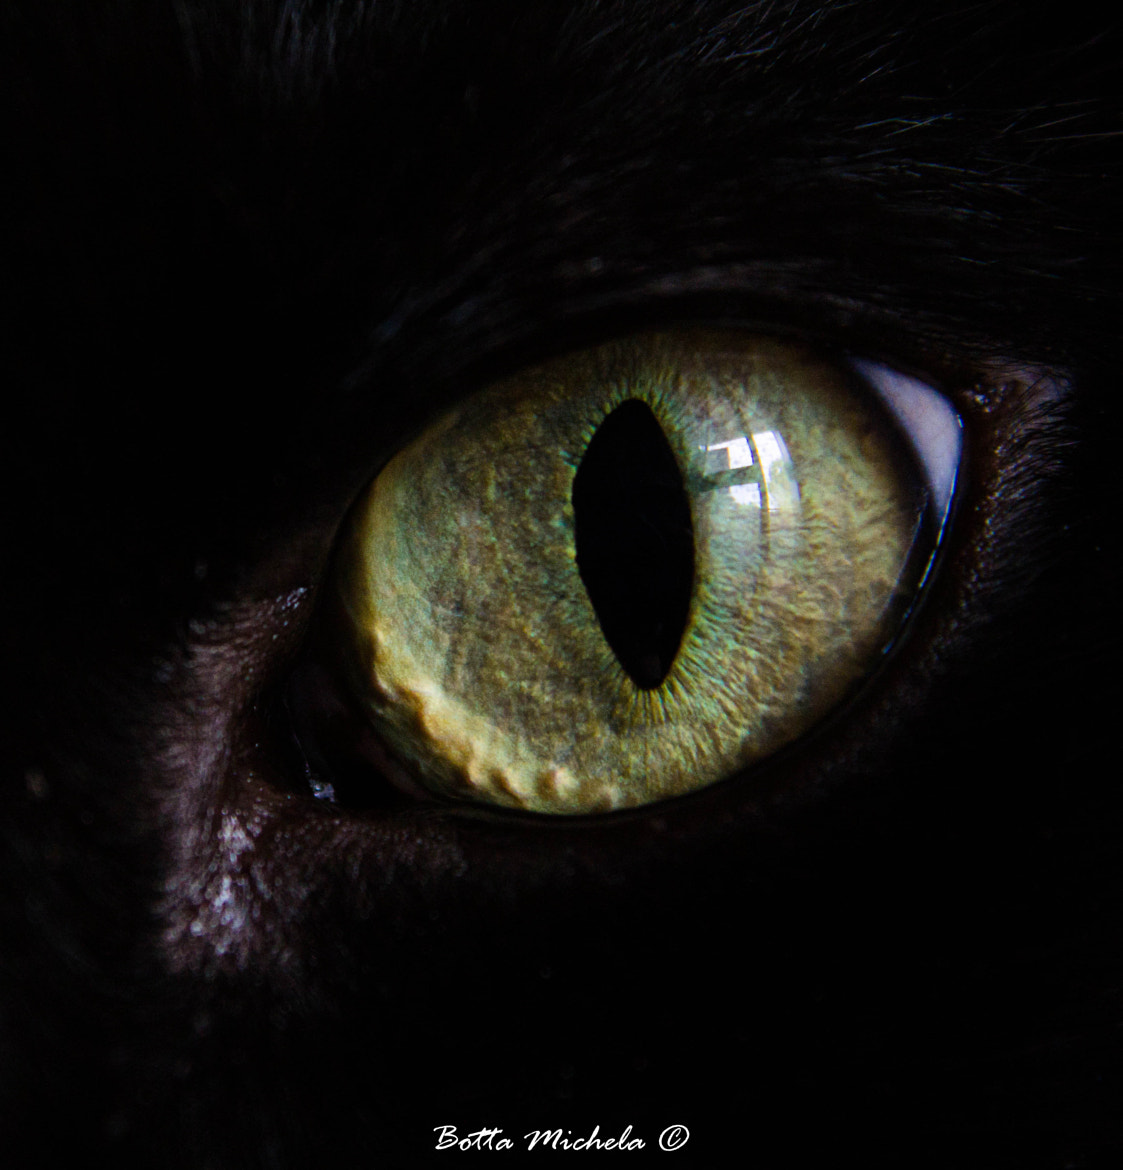 Photograph Eye cat by Michela Botta on 500px